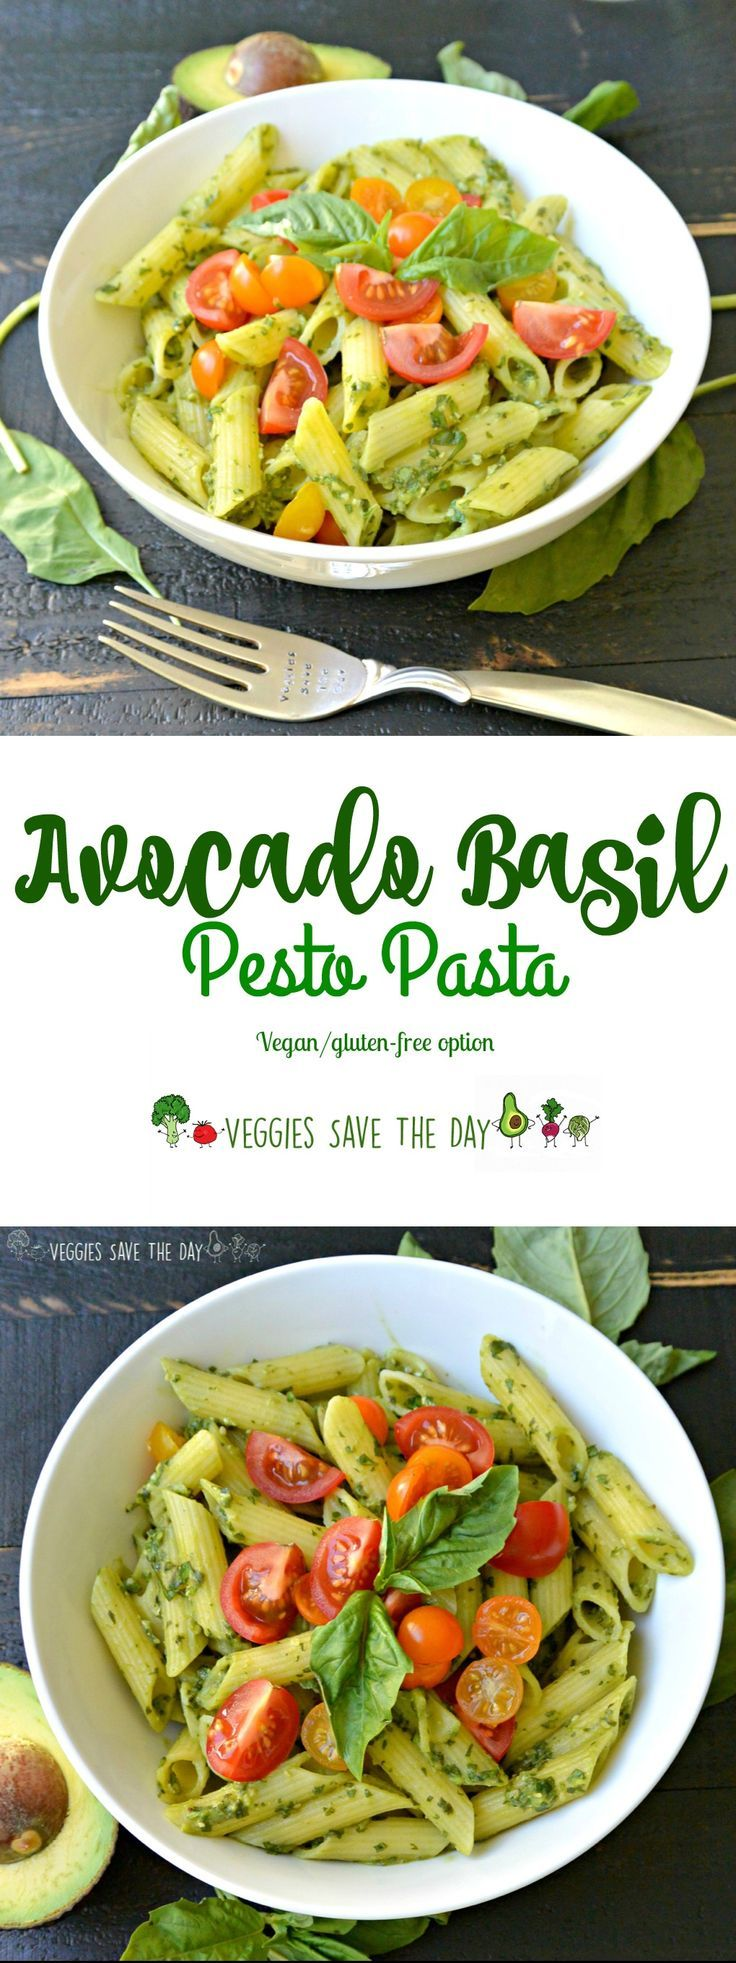 Avocado Basil Pesto Pasta takes only minutes to make and is flavorful and creamy without using any oil. It's delicious hot or at room…